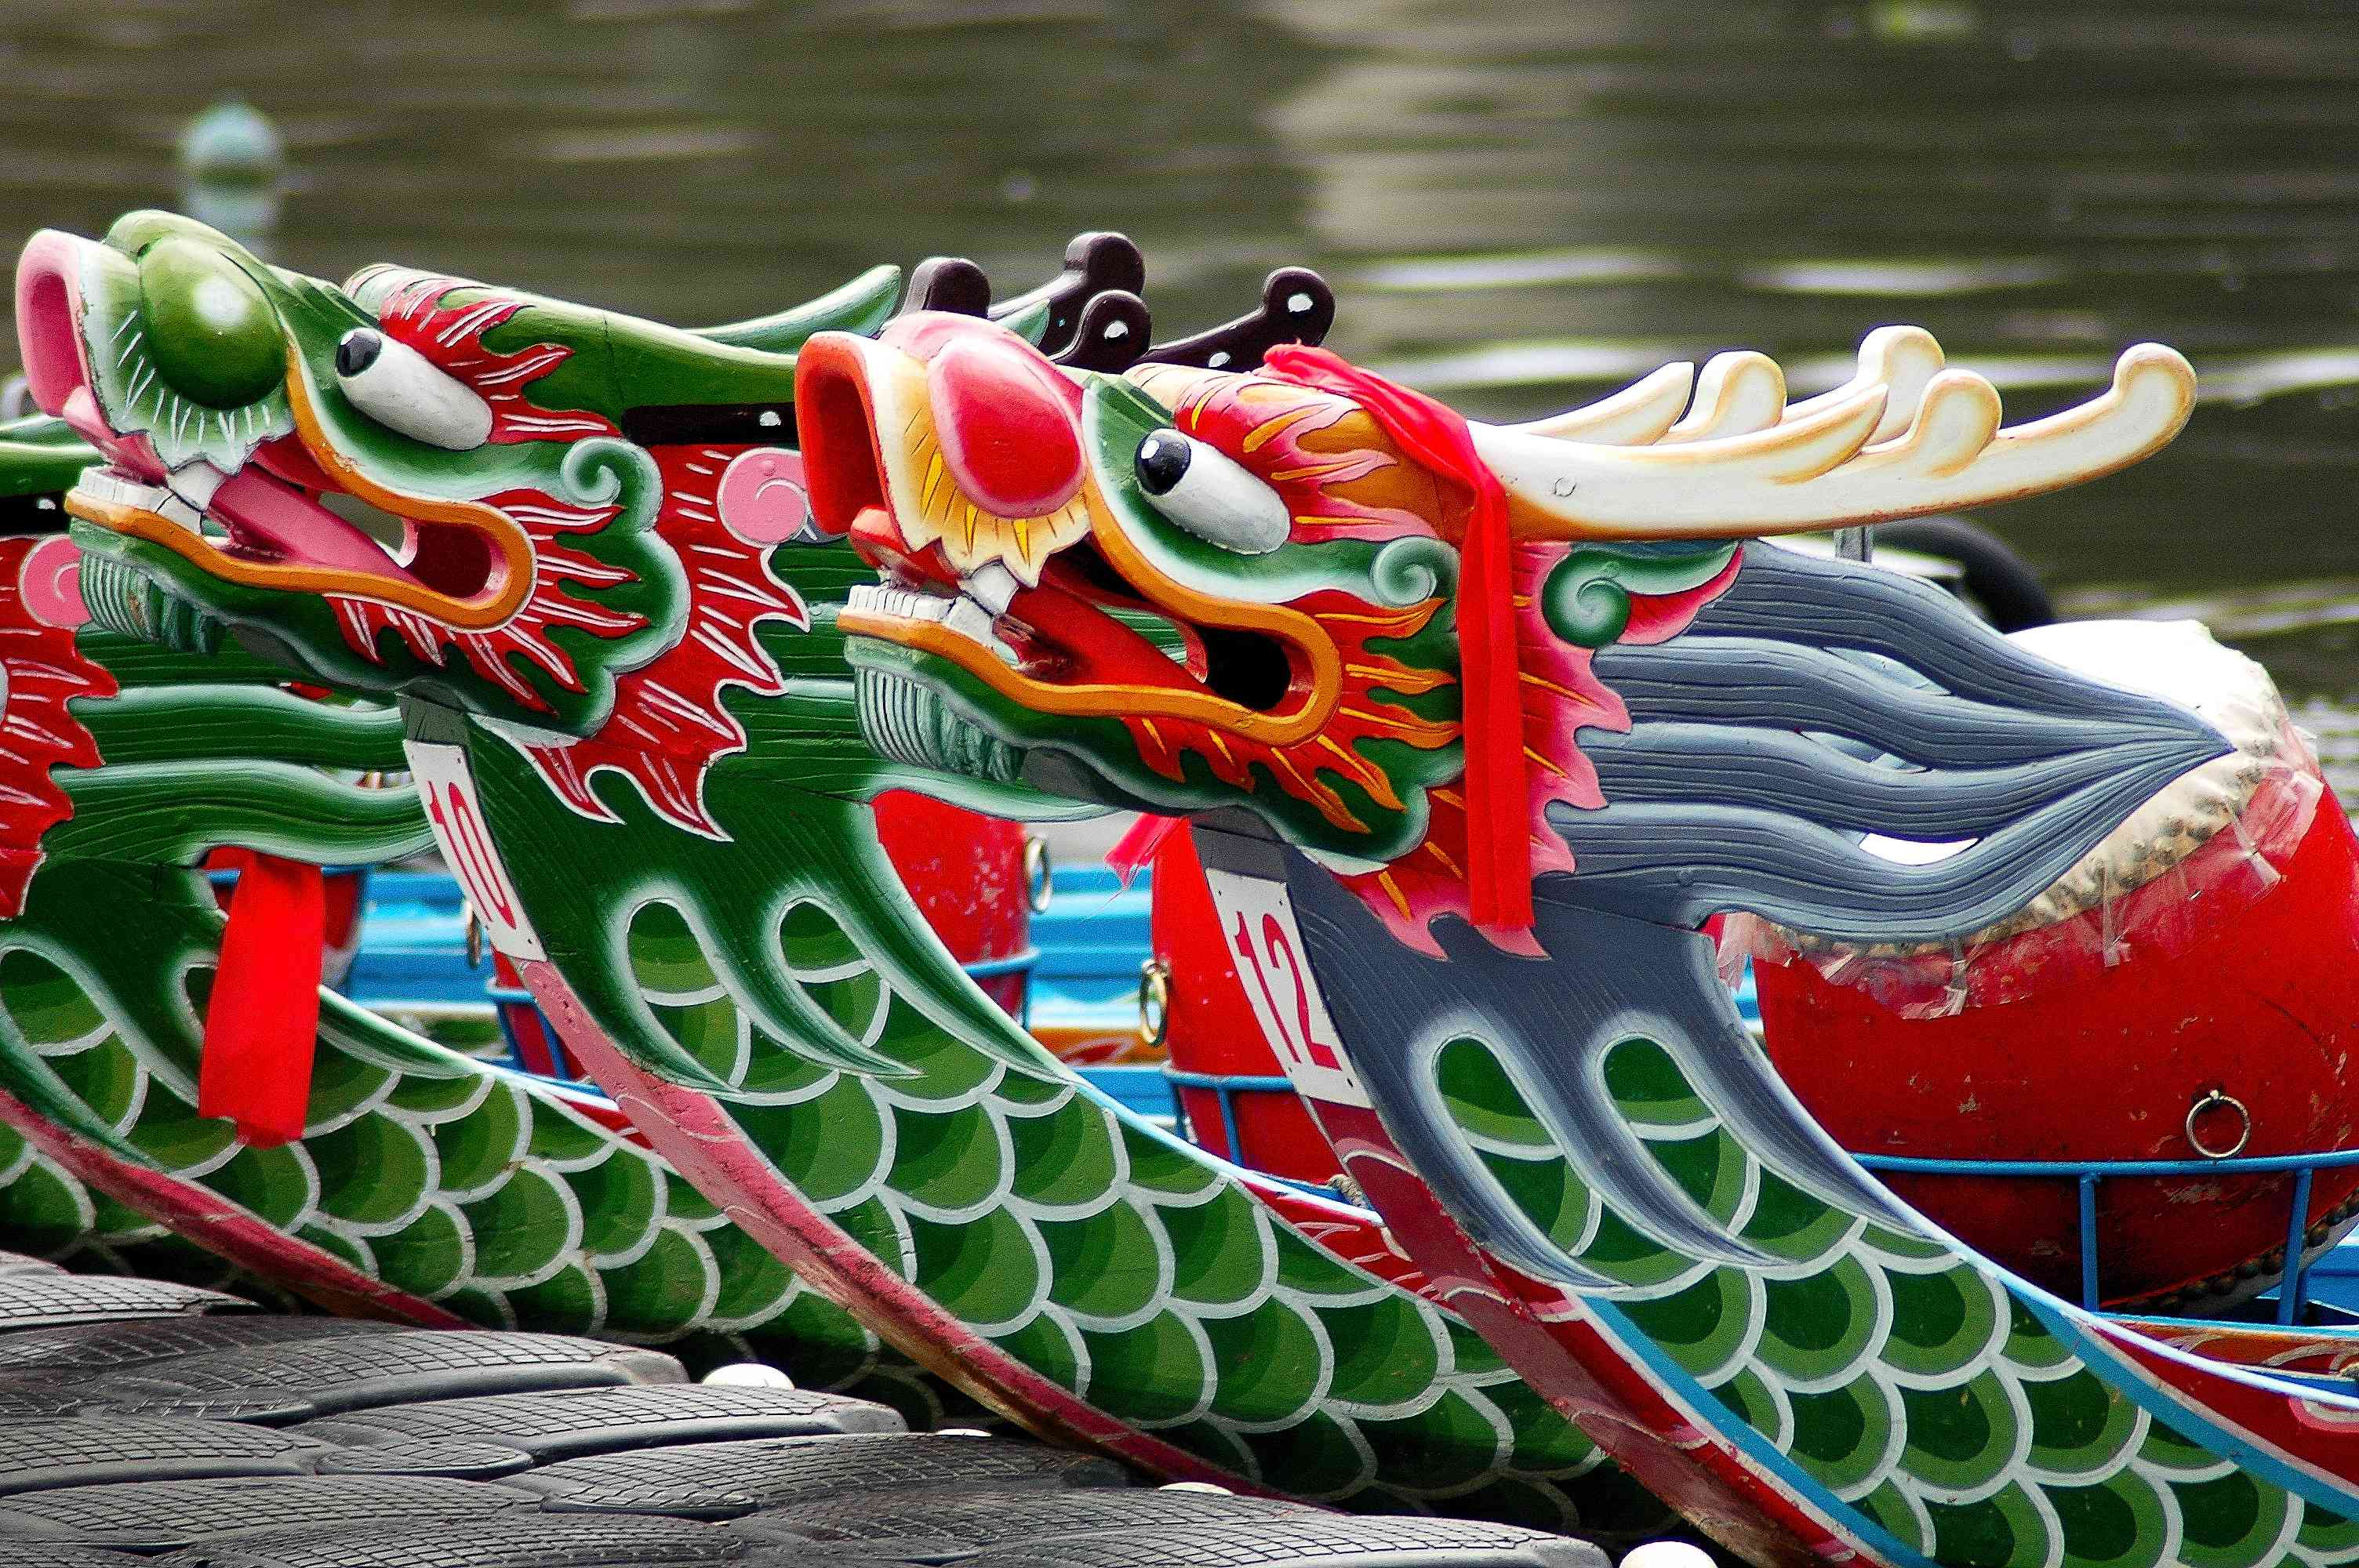 Colorful dragonboats from the dragonboat festival in Shanghai